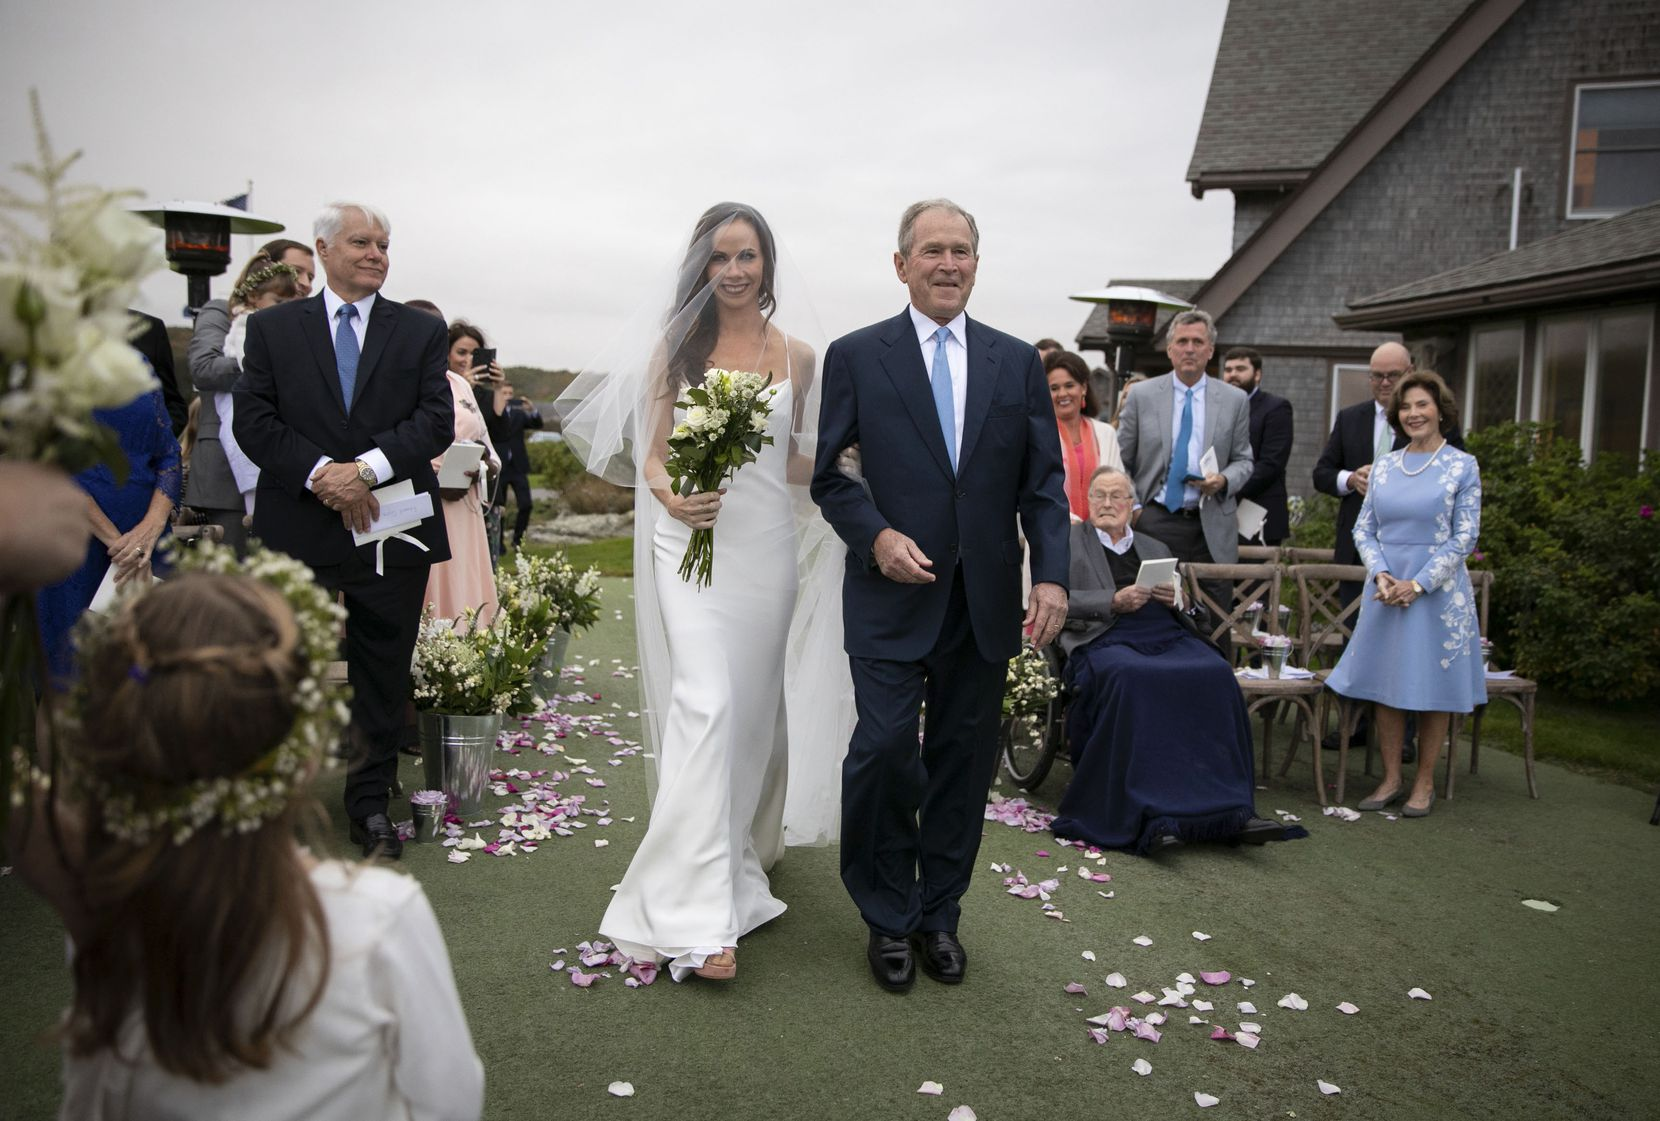 Barbara Bush is walked up the aisle by her father, Pres. George W. Bush, during her wedding to Craig Coyne on October 7, 2018 in Kennebunkport, Maine. With them were Barbara's mother, former first lady Laura Bush, (far right) and her grandfather, former Pres. George H. Bush (seated).